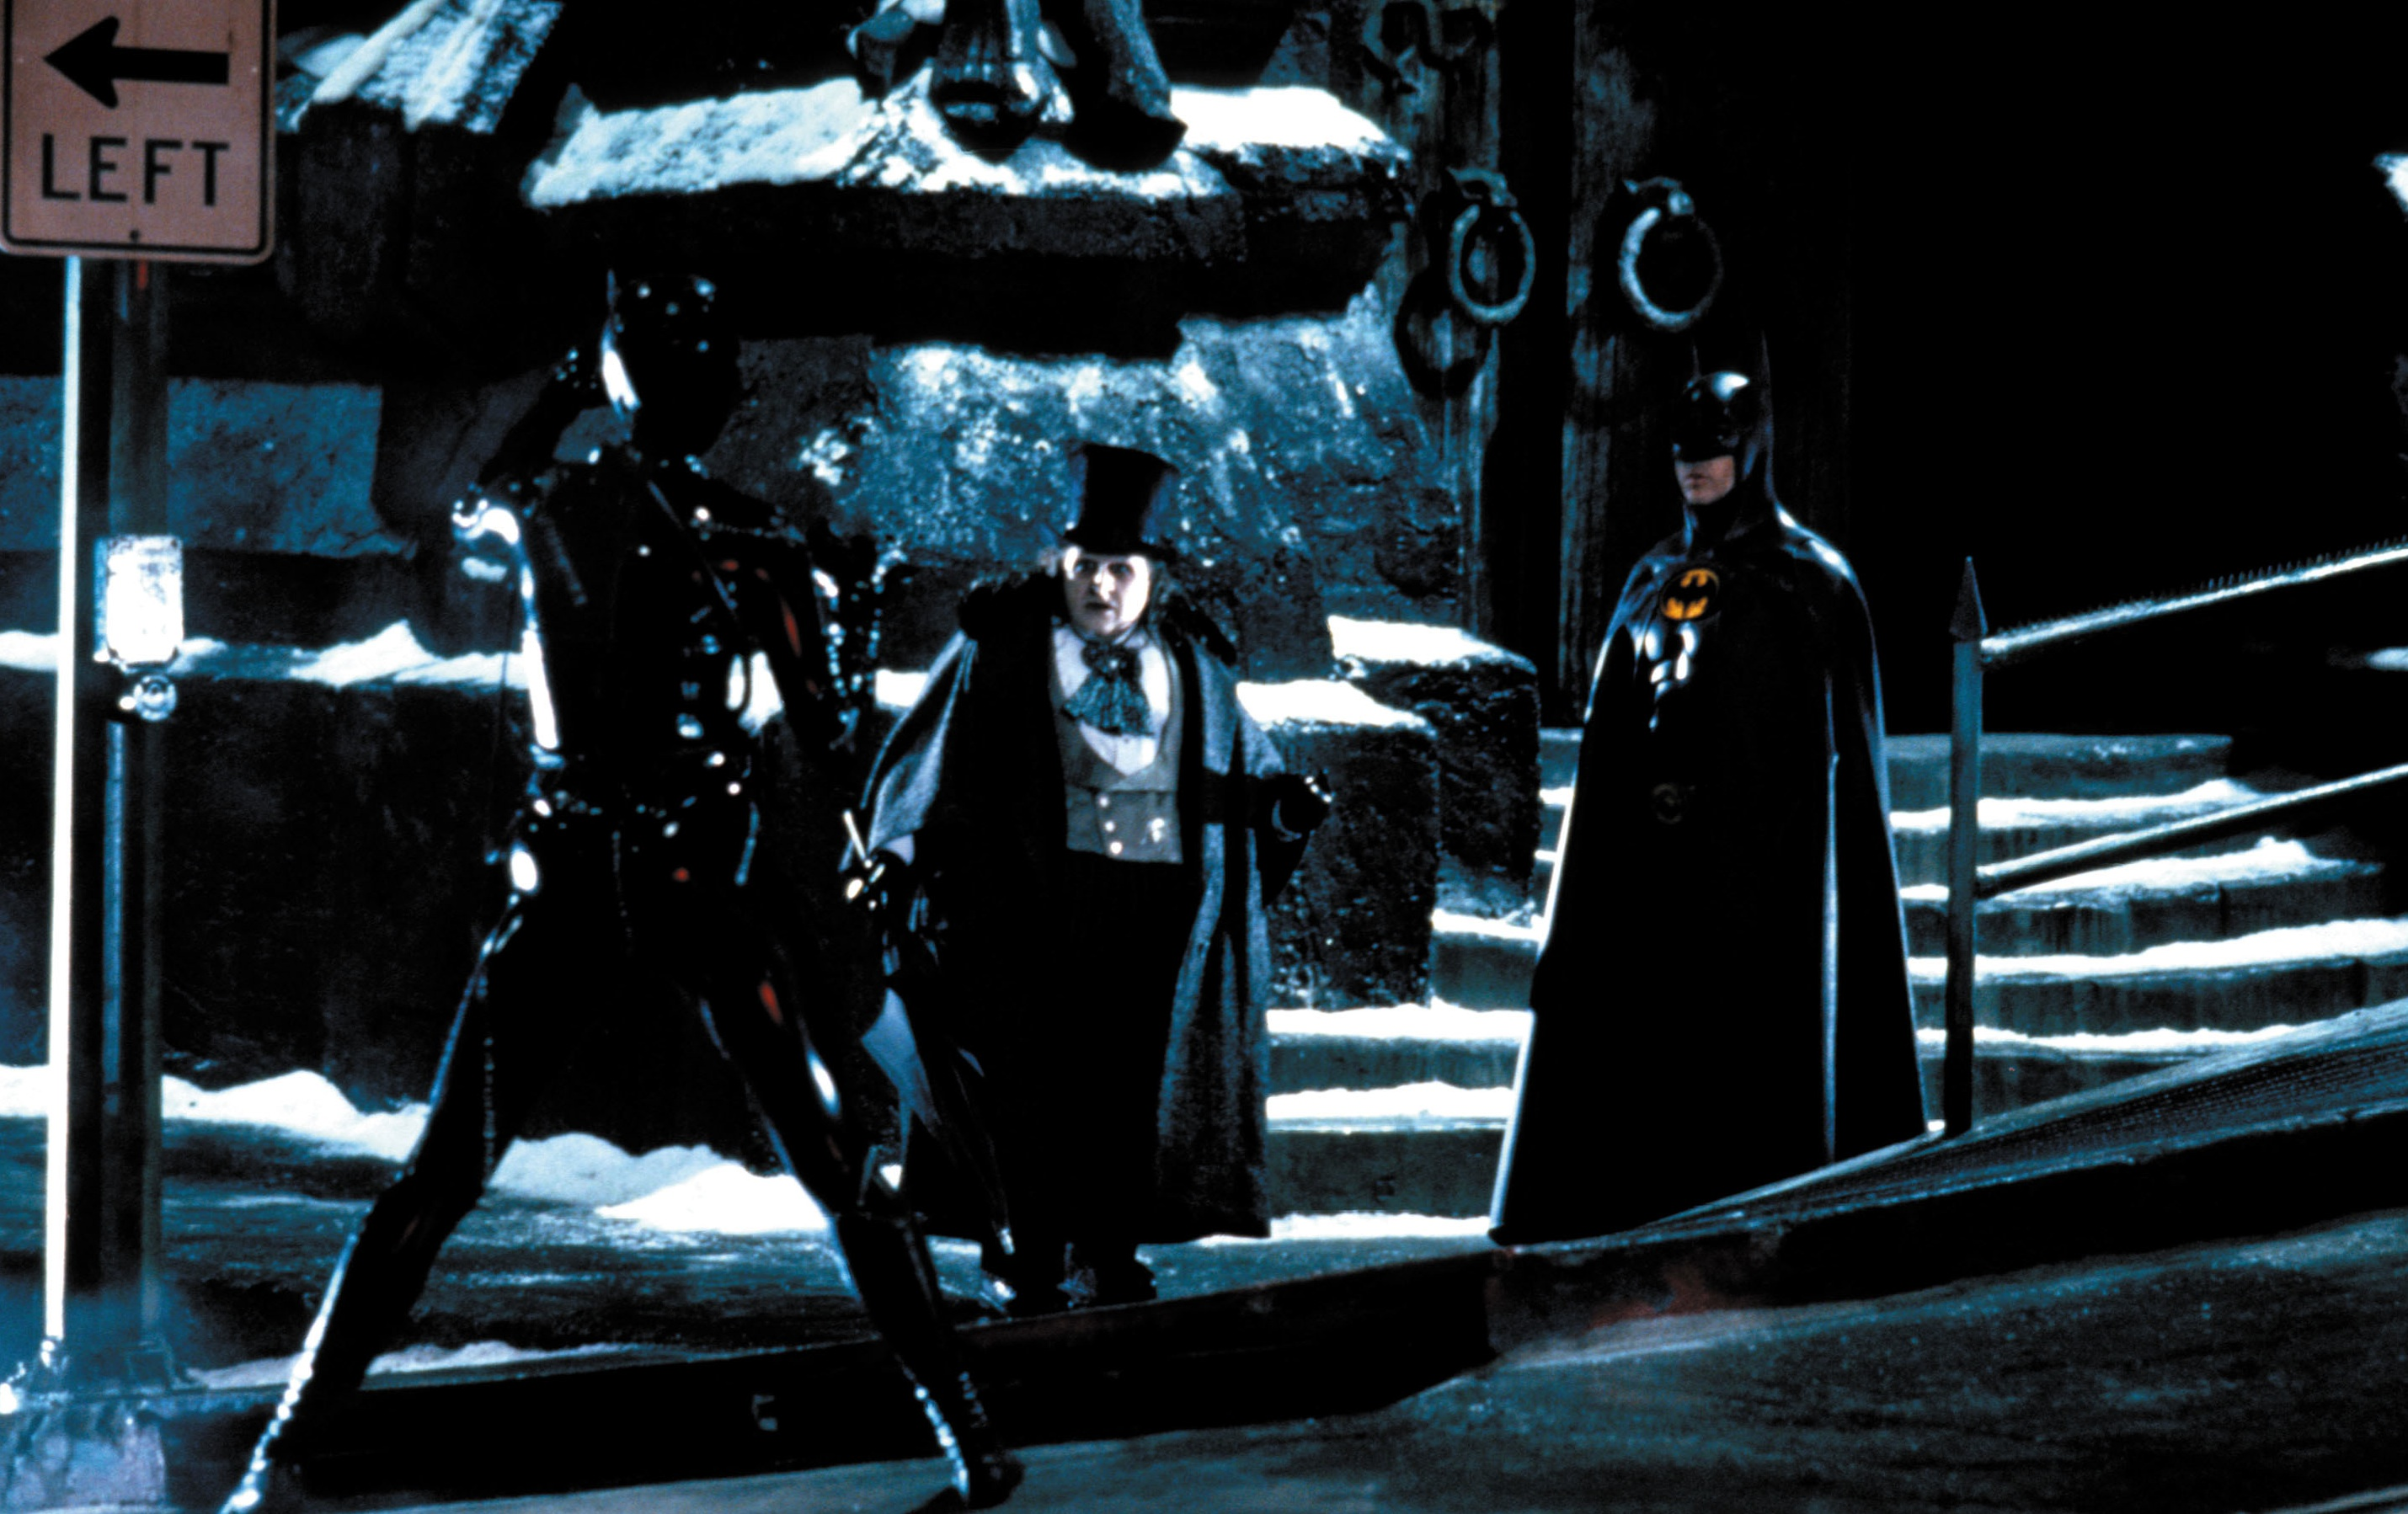 symbols from the myth of baste in the movie catwoman The myth of aristocracy is that evil monopolists, angry generals, and dark gods, ie symbols of abusive authority and catwoman are all villains.